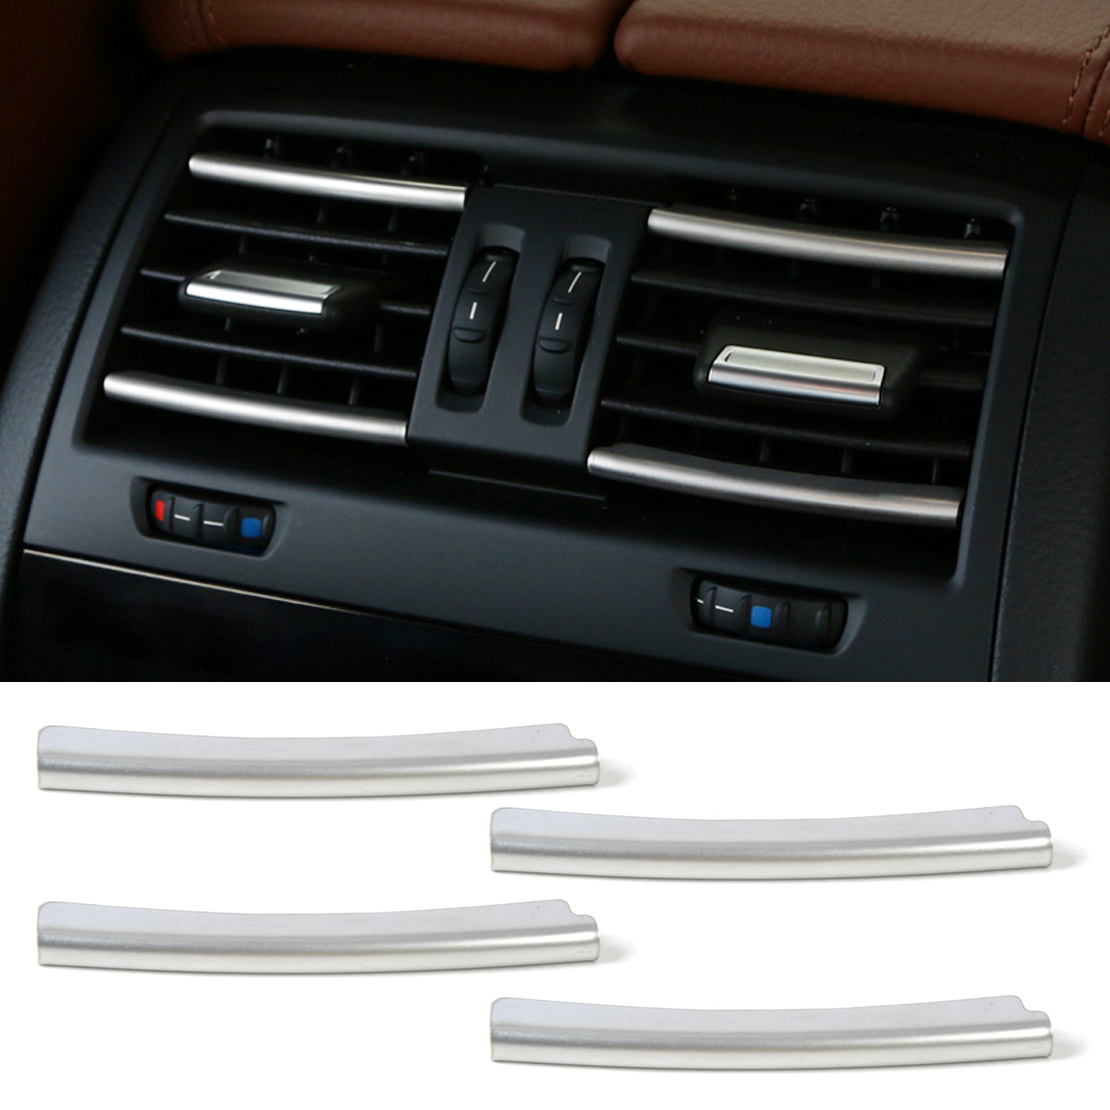 DWCX car styling Rear Air Condition Vent Outlet Grille Cover Trim Strip For BMW 5 Series